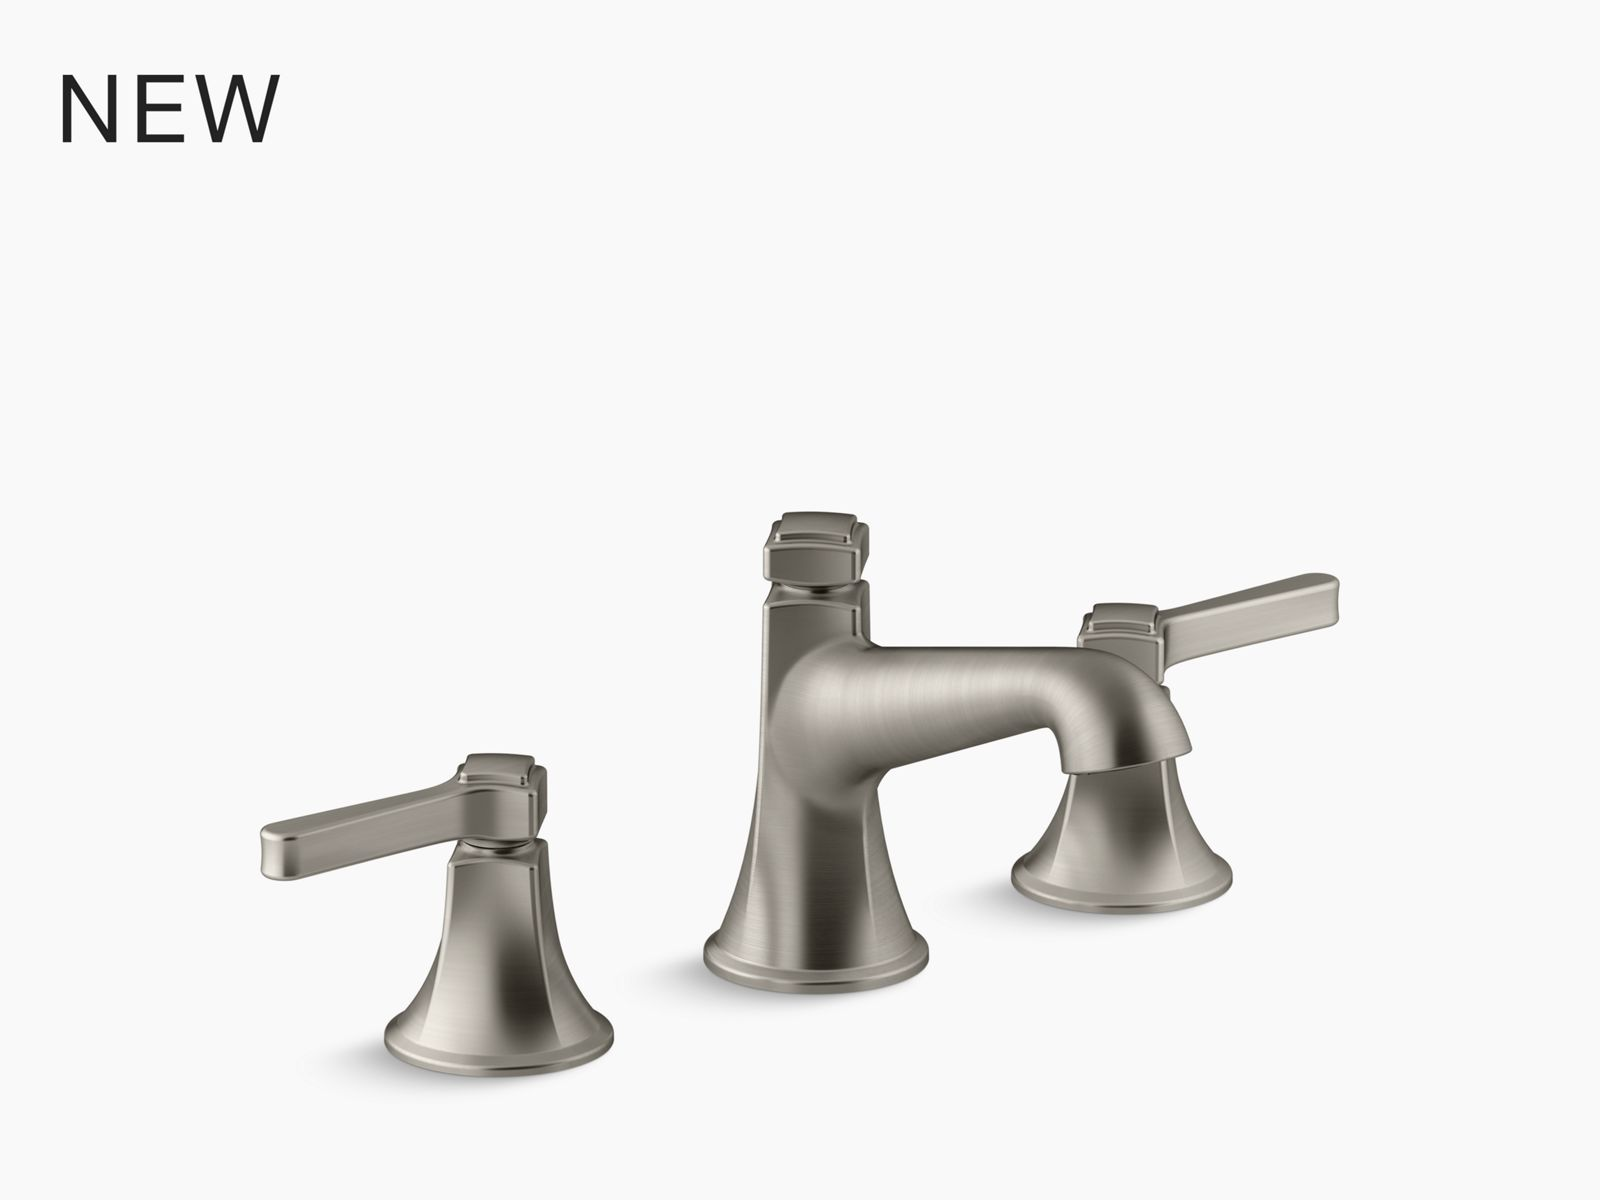 8 widespread lavatory faucet 8660t 2